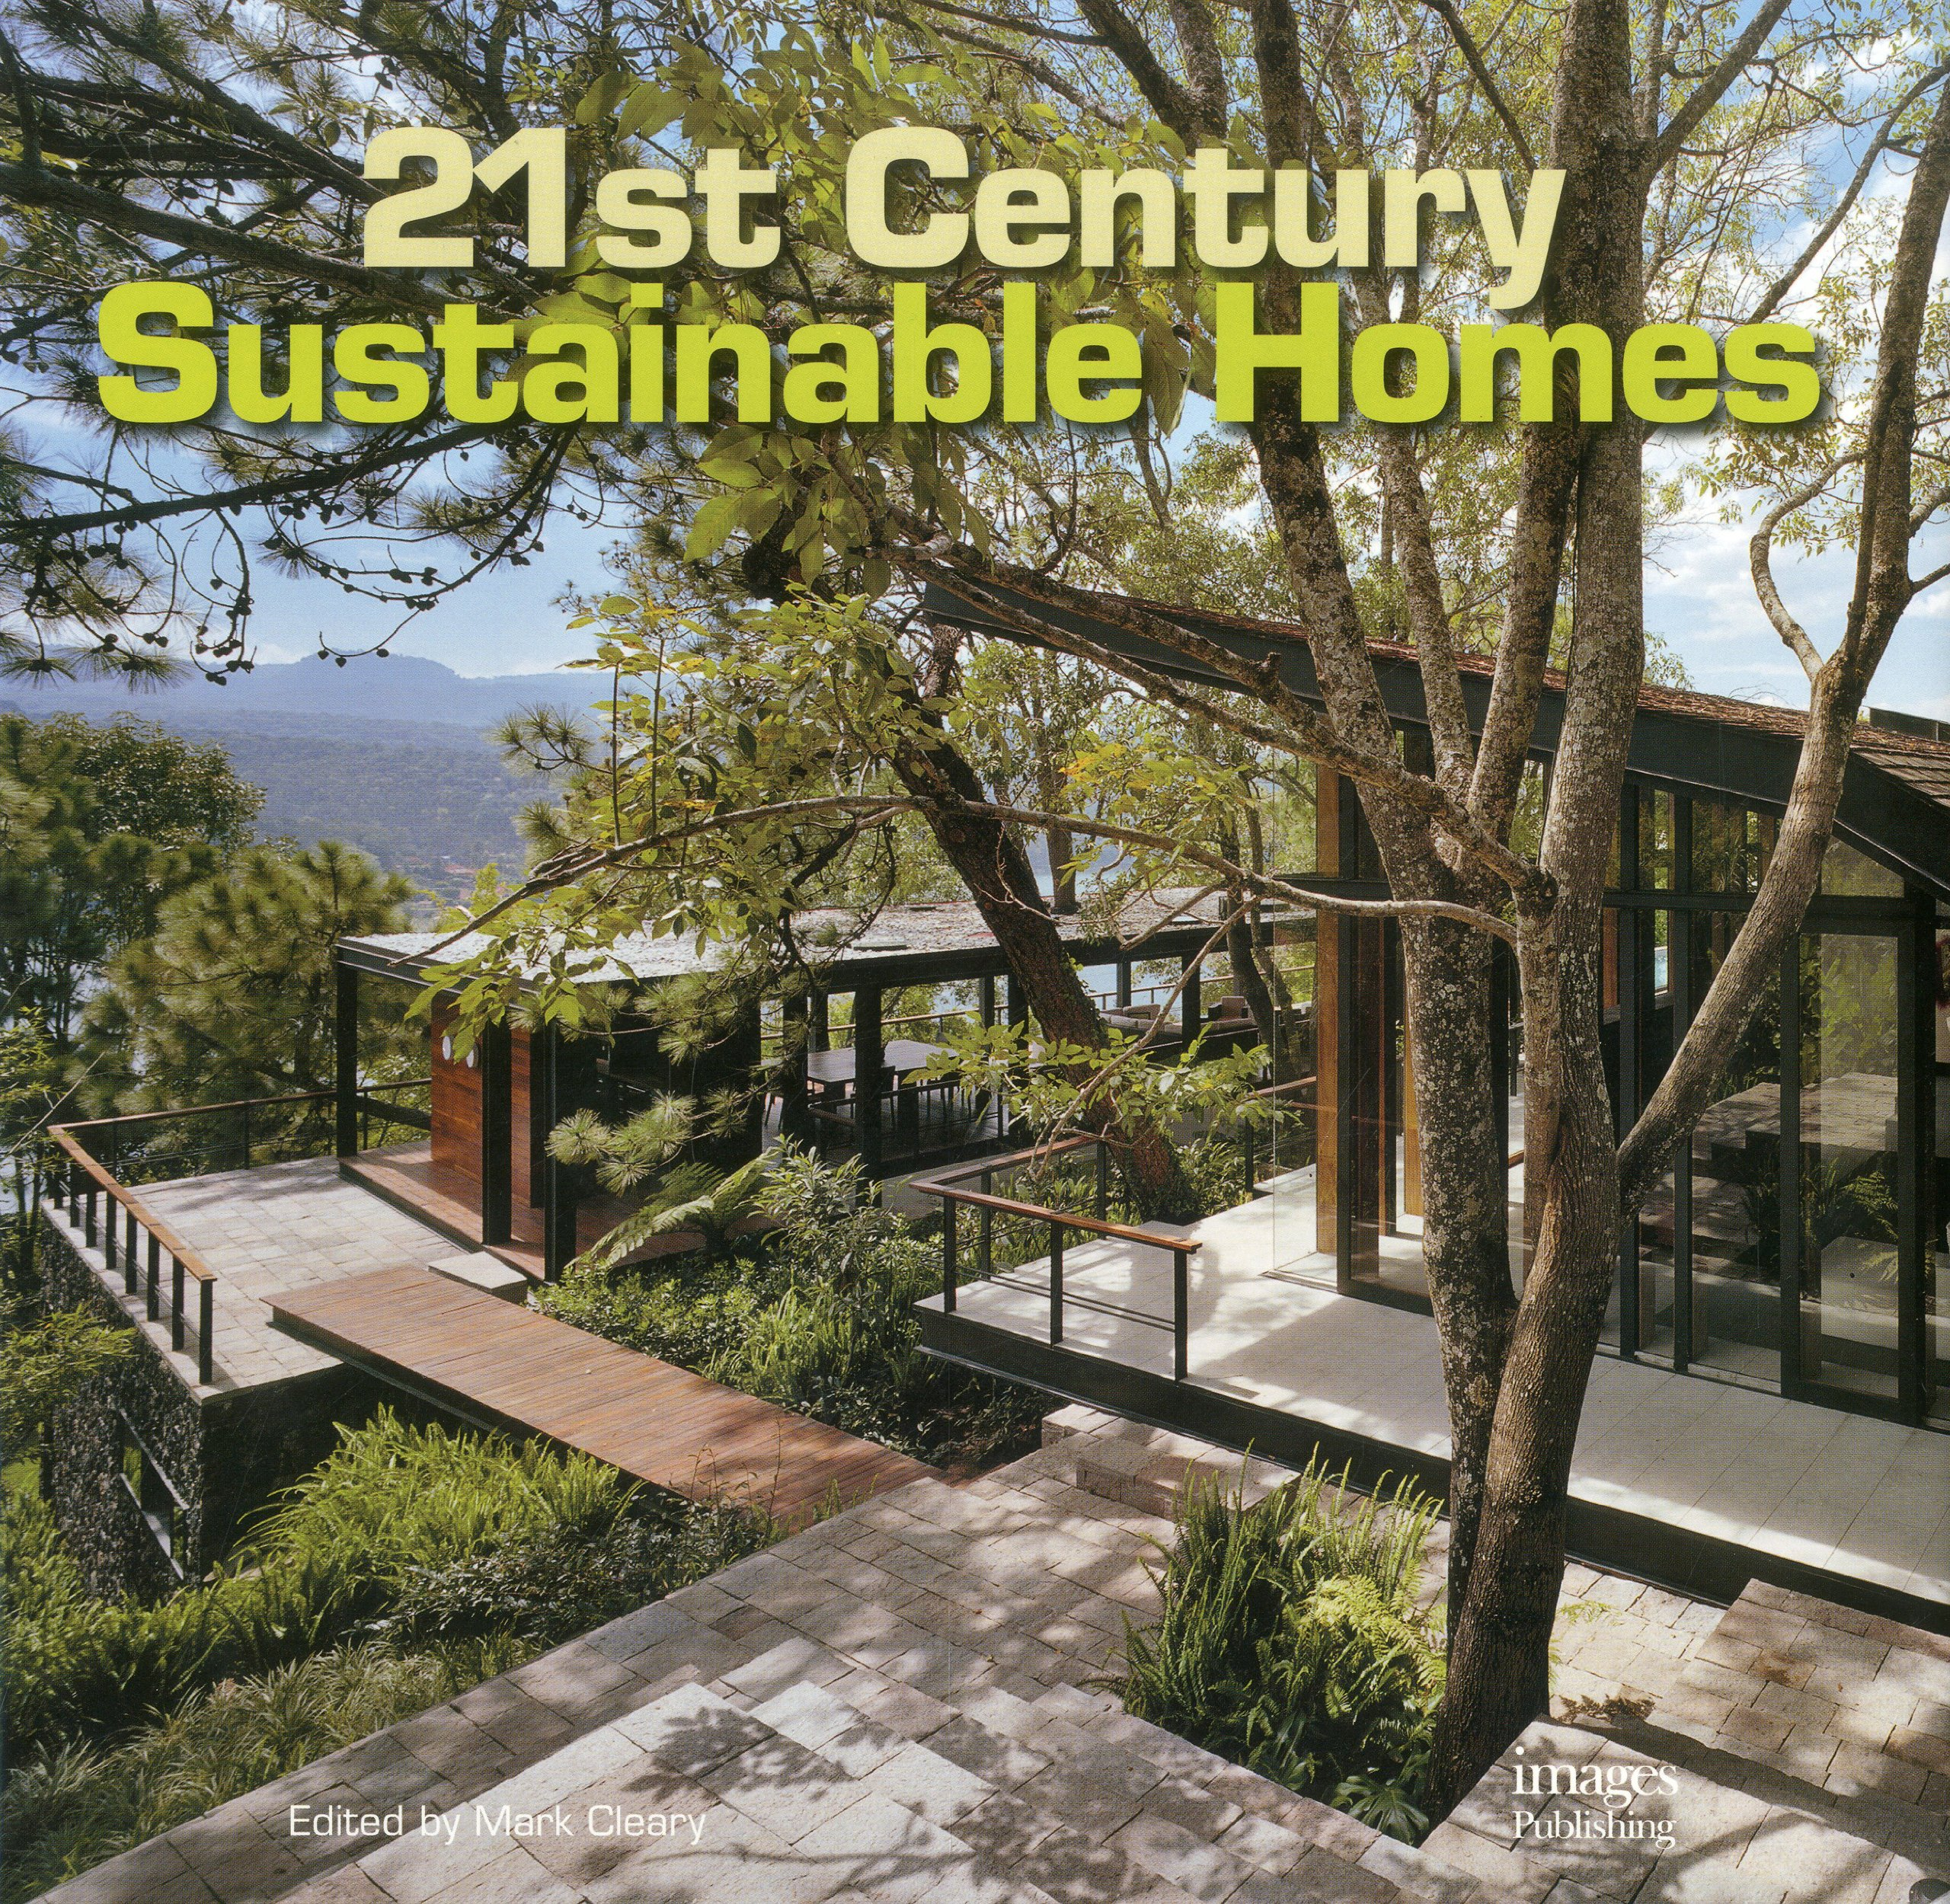 21st century sustainable homes mark cleary 9781864704280 amazon